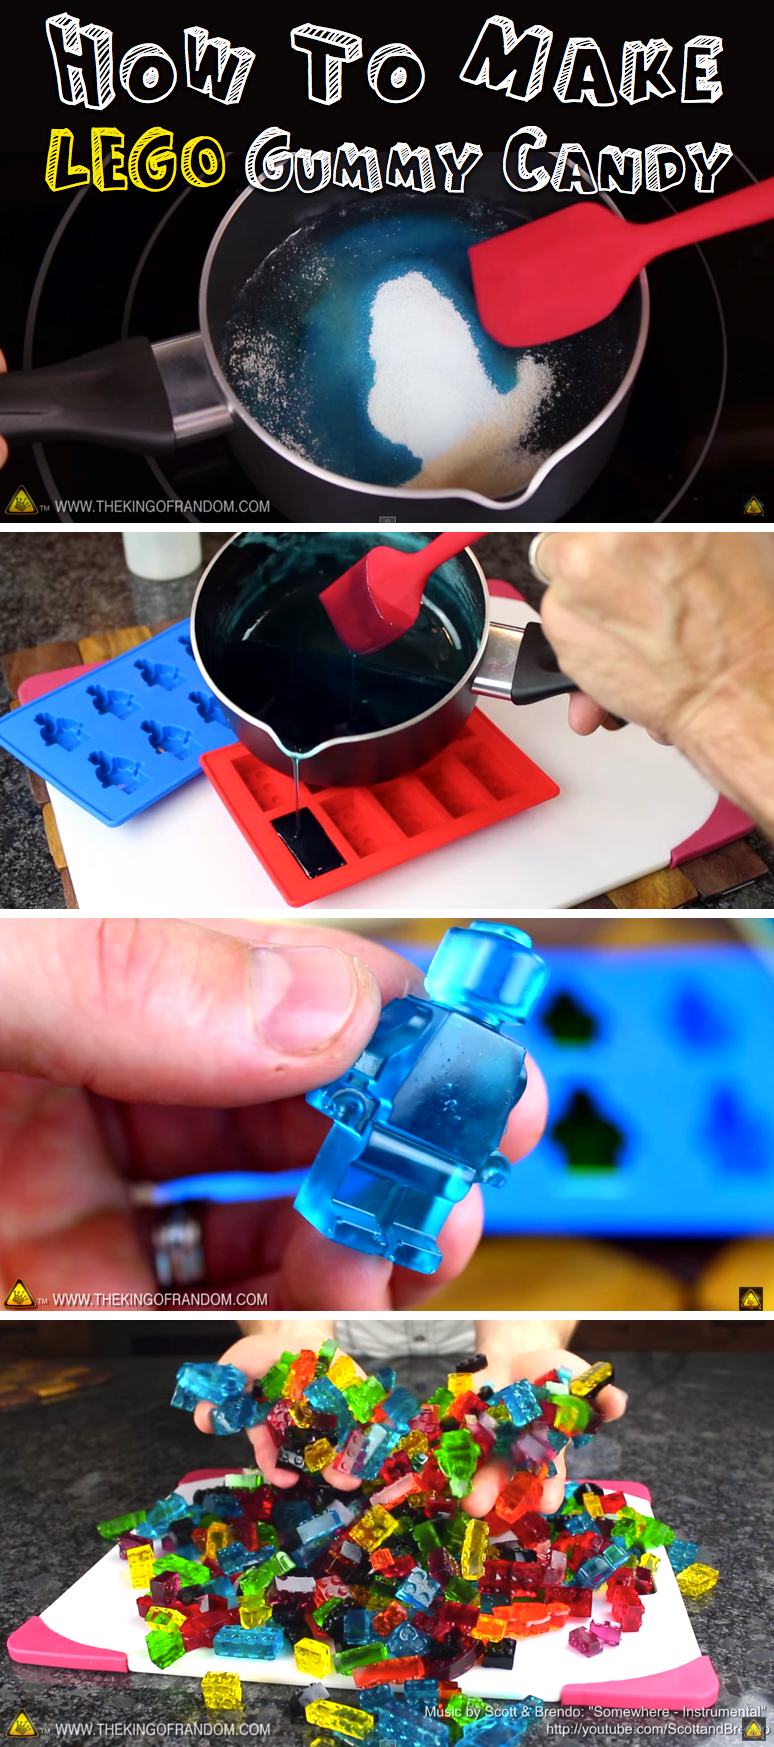 How To Make LEGO Gummy Candy